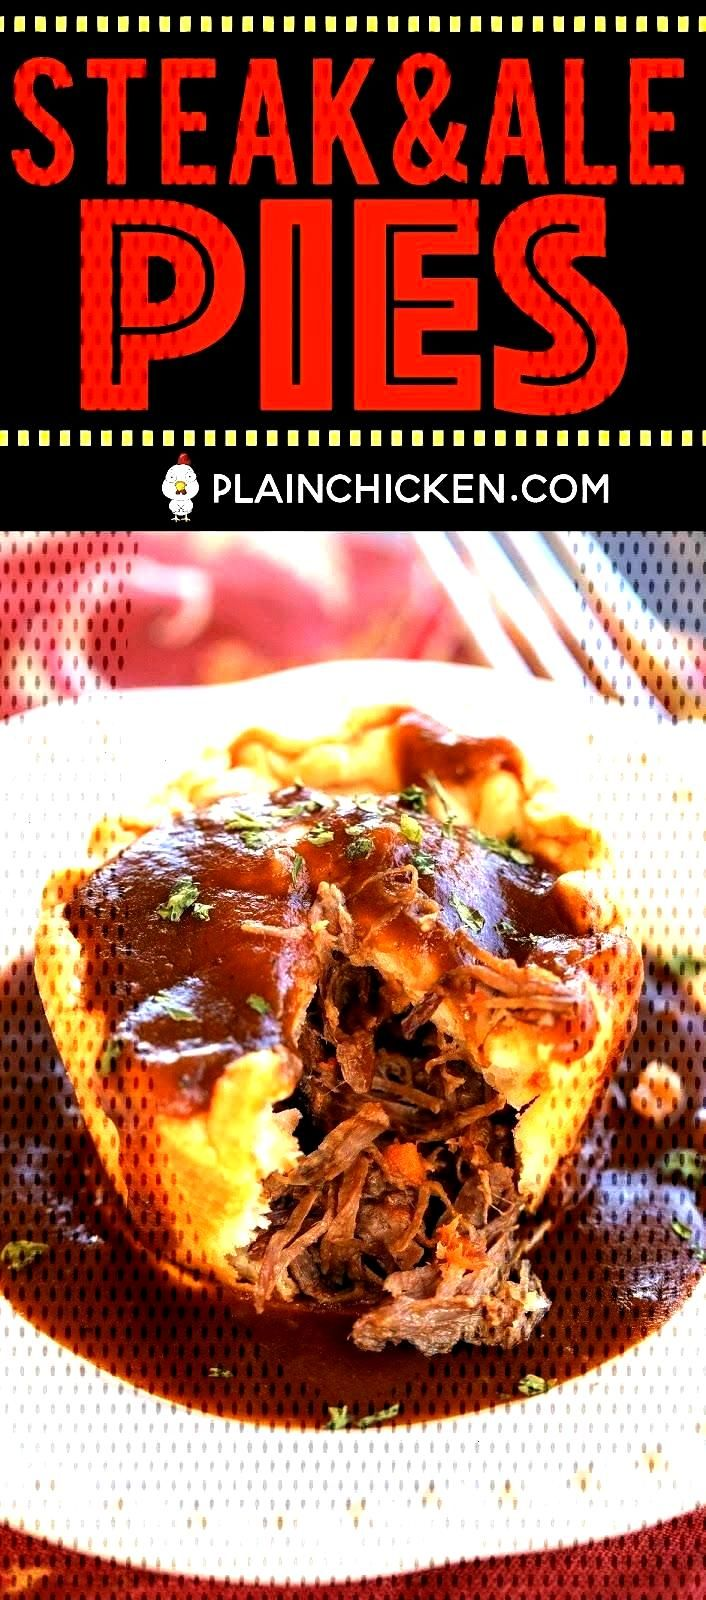 Steak amp Ale Pies Steak amp Ale Pies,You can find Pies and more on our website.Steak amp Ale Pies Steak